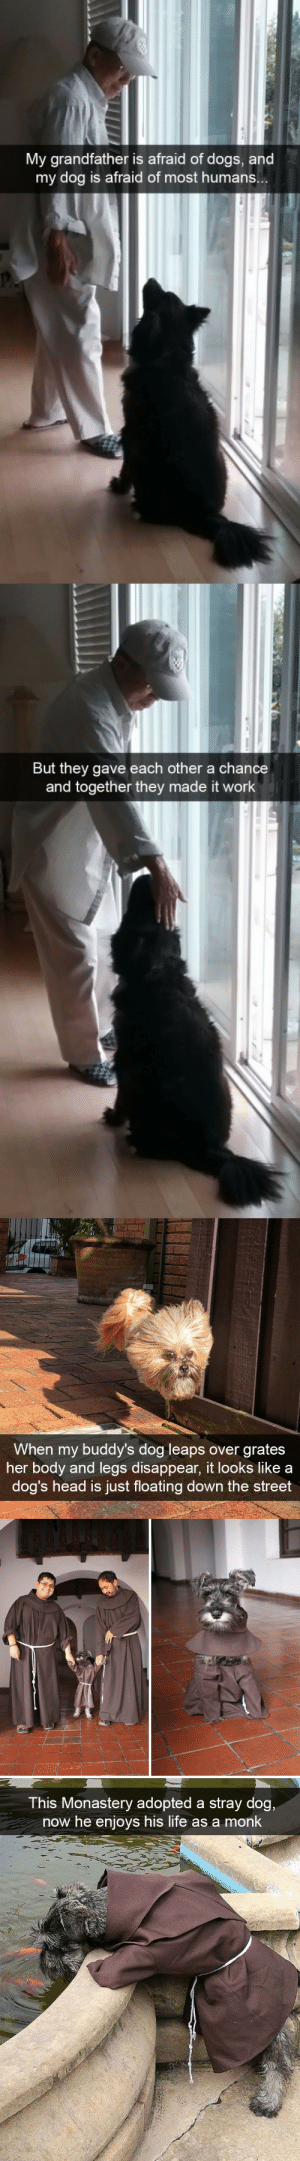 babyanimalgifs:Funny dog snaps: My grandfather is afraid of dogs, and  my dog is afraid of most humans  But they gave each other a chance  and together they made it work   When my buddy's dog leaps over grates  her body and legs disappear, it looks like a  dog's head is just floating down the street   This Monastery adopted a stray dog  now he enjoys his life as a monk babyanimalgifs:Funny dog snaps